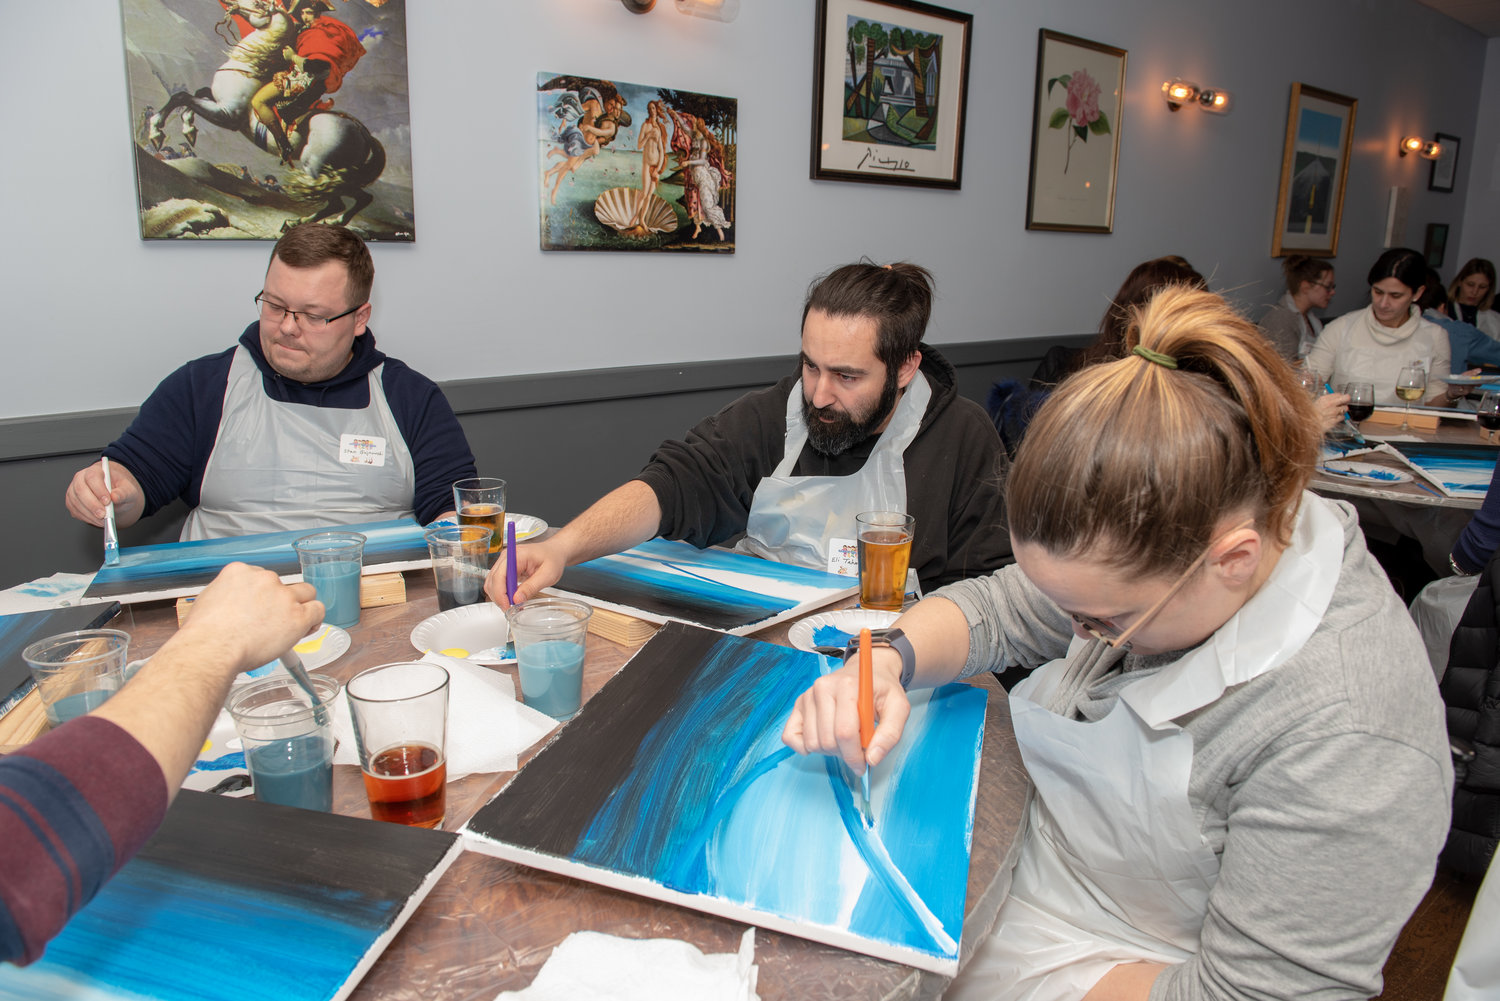 Stan Bujnowski, left, and Eli and Michelle Tahmasebi focused as they painted.